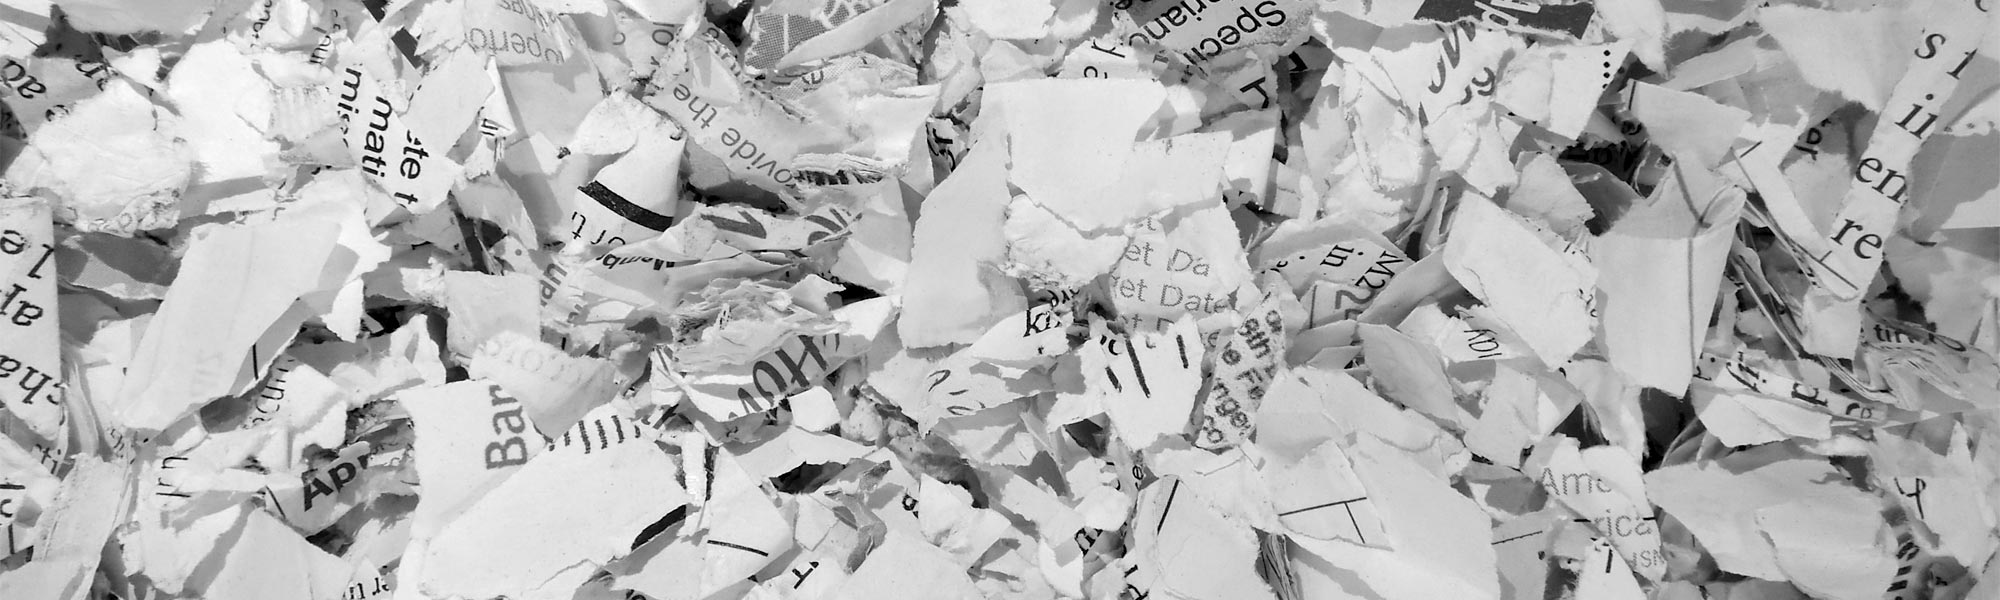 Flexible Document Shredding Solutions